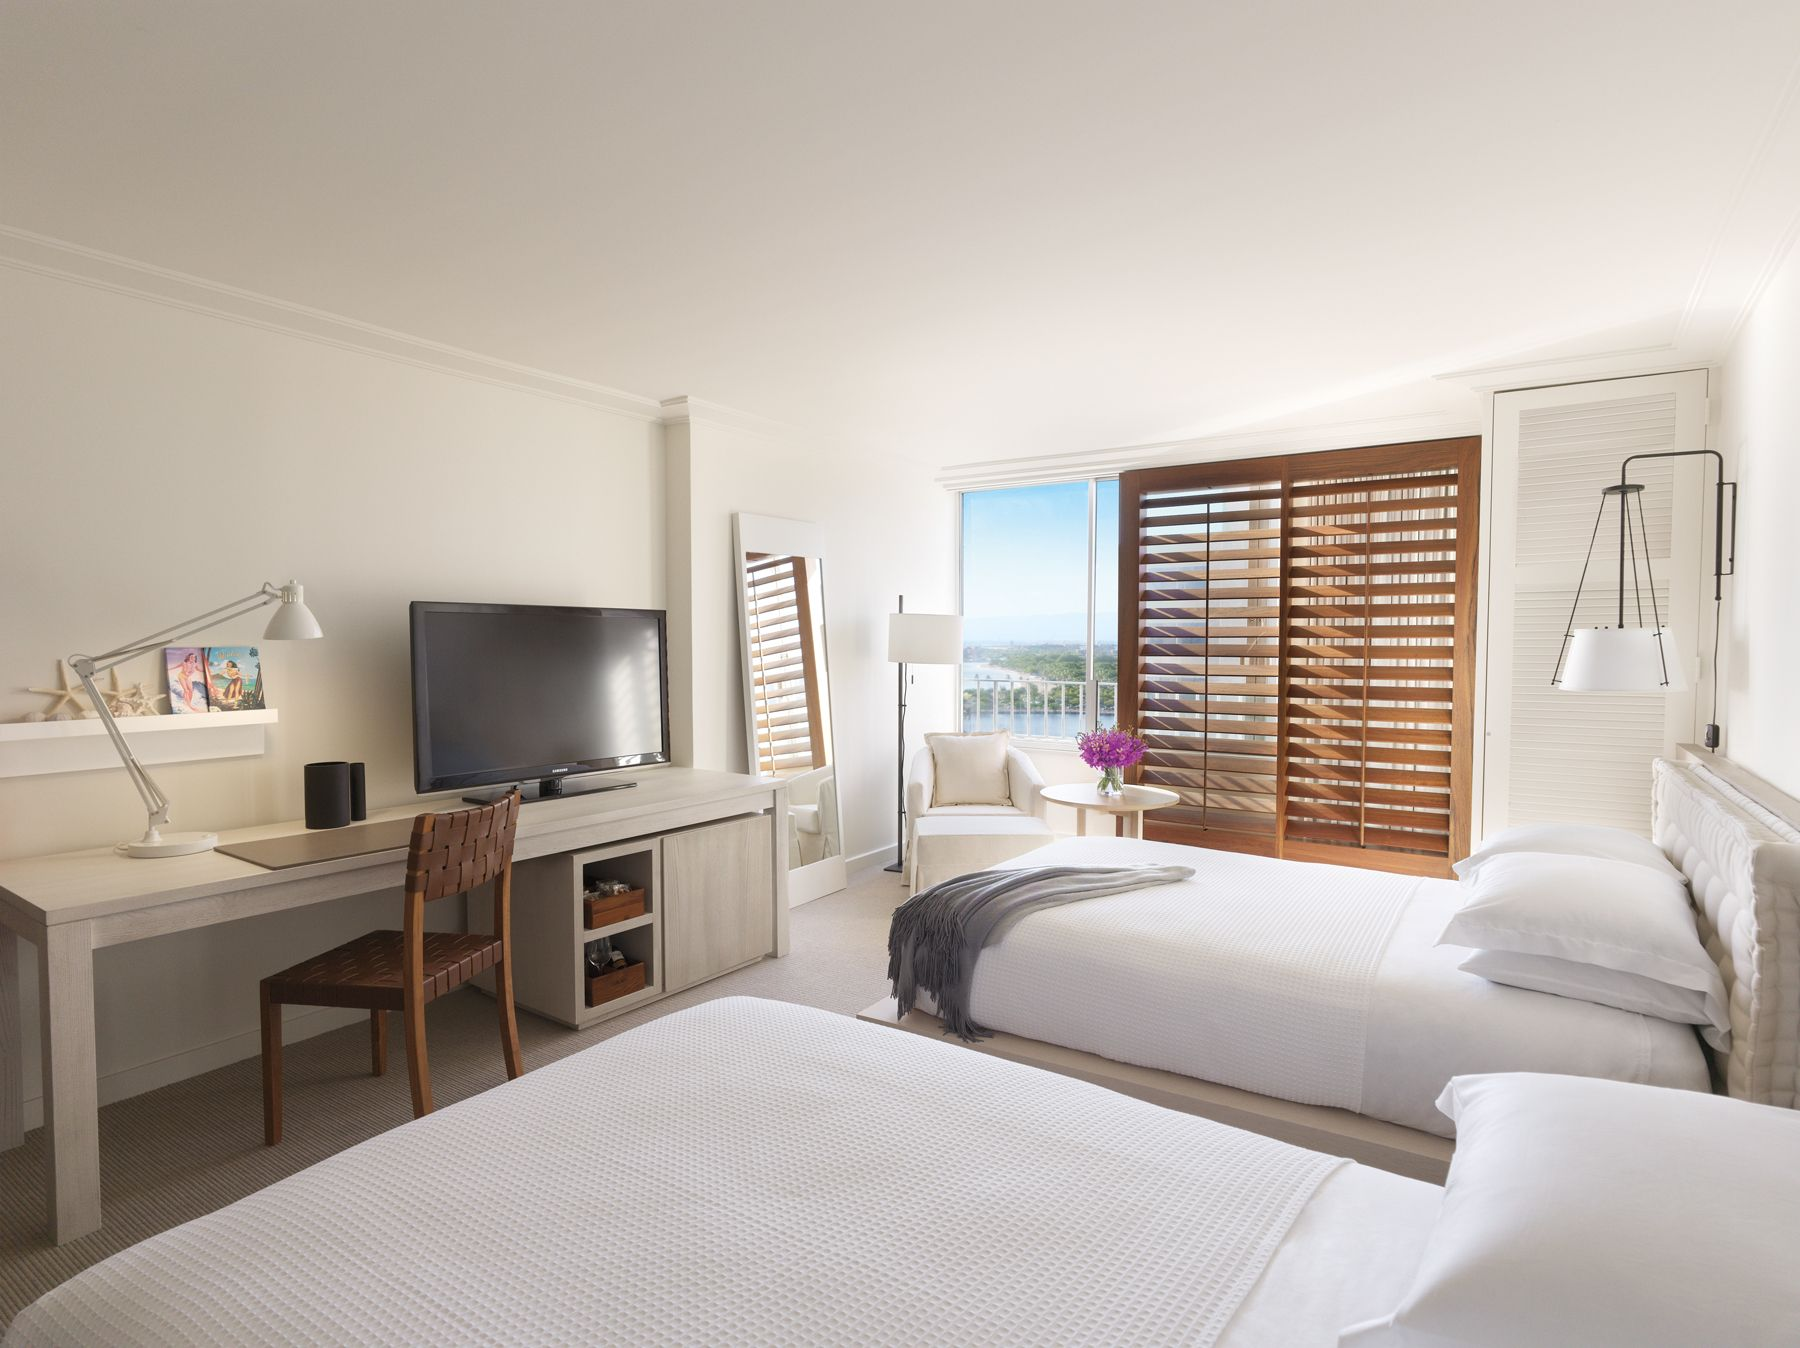 hotel rooms in hawaii 2018 world s best hotels Hawaii Hotel Rooms Hawaii Hotel Rooms